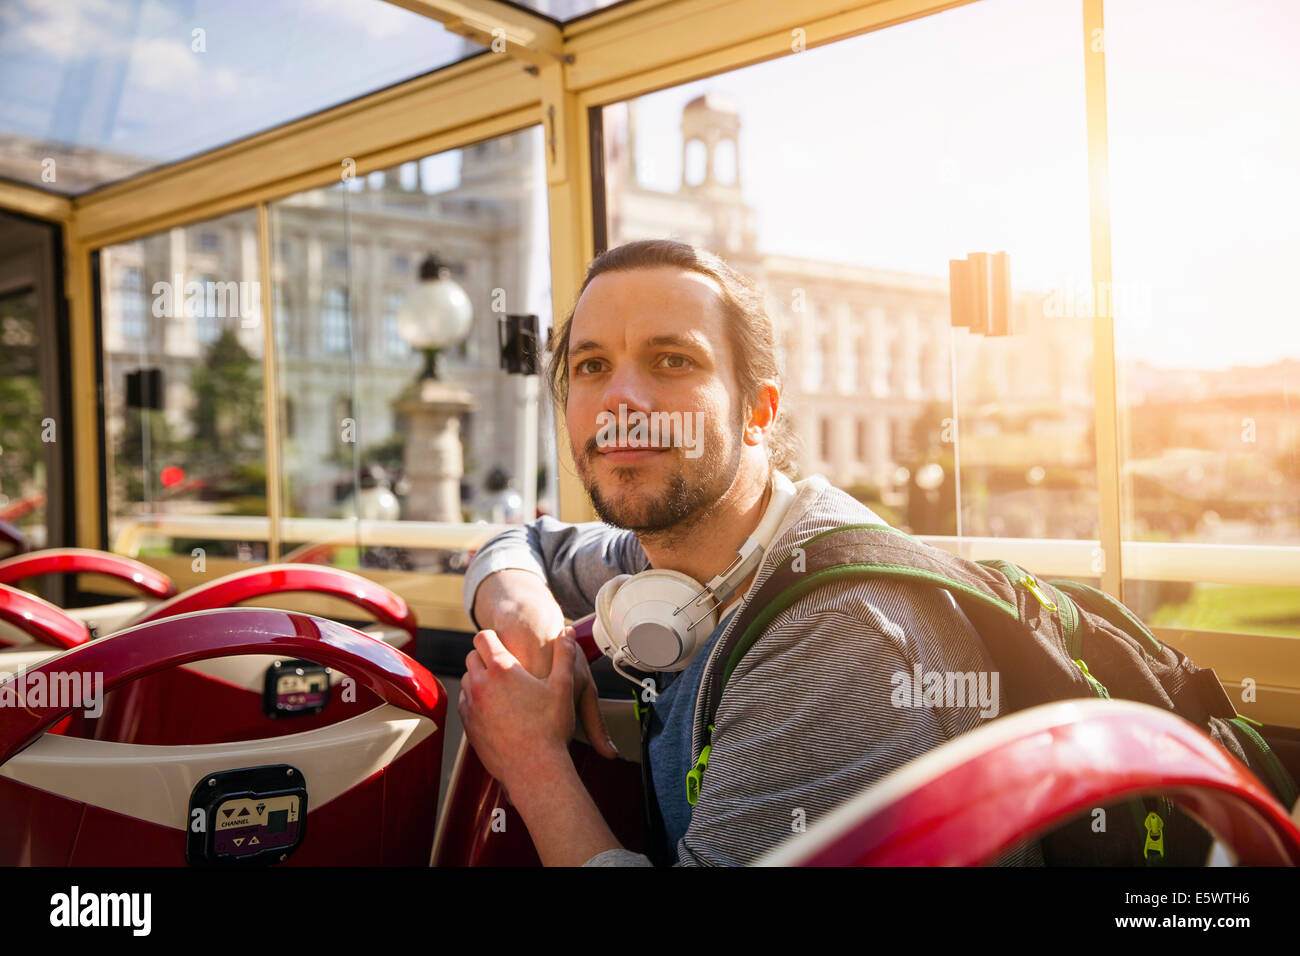 Young adult man on bus Photo Stock